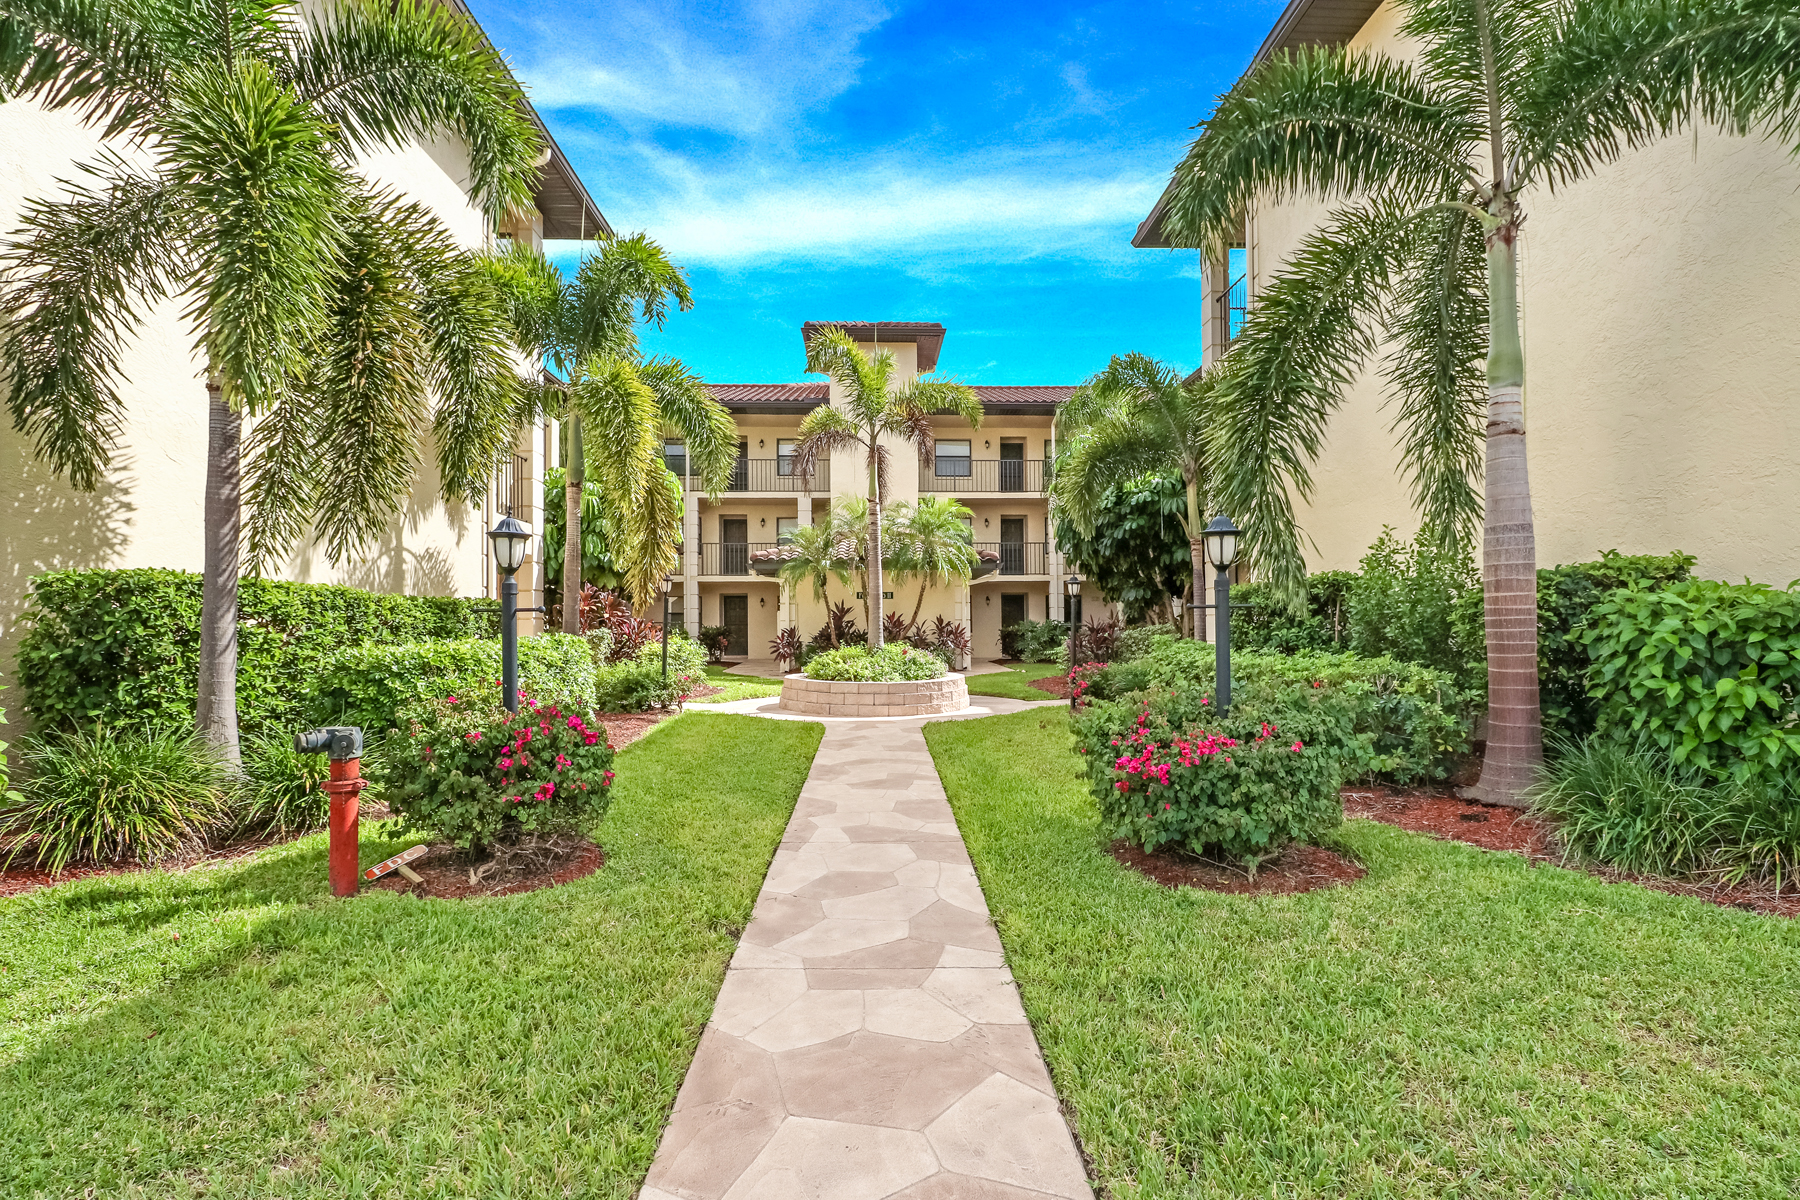 Don't Miss Out On This Amazing 1st Floor Condo!!!